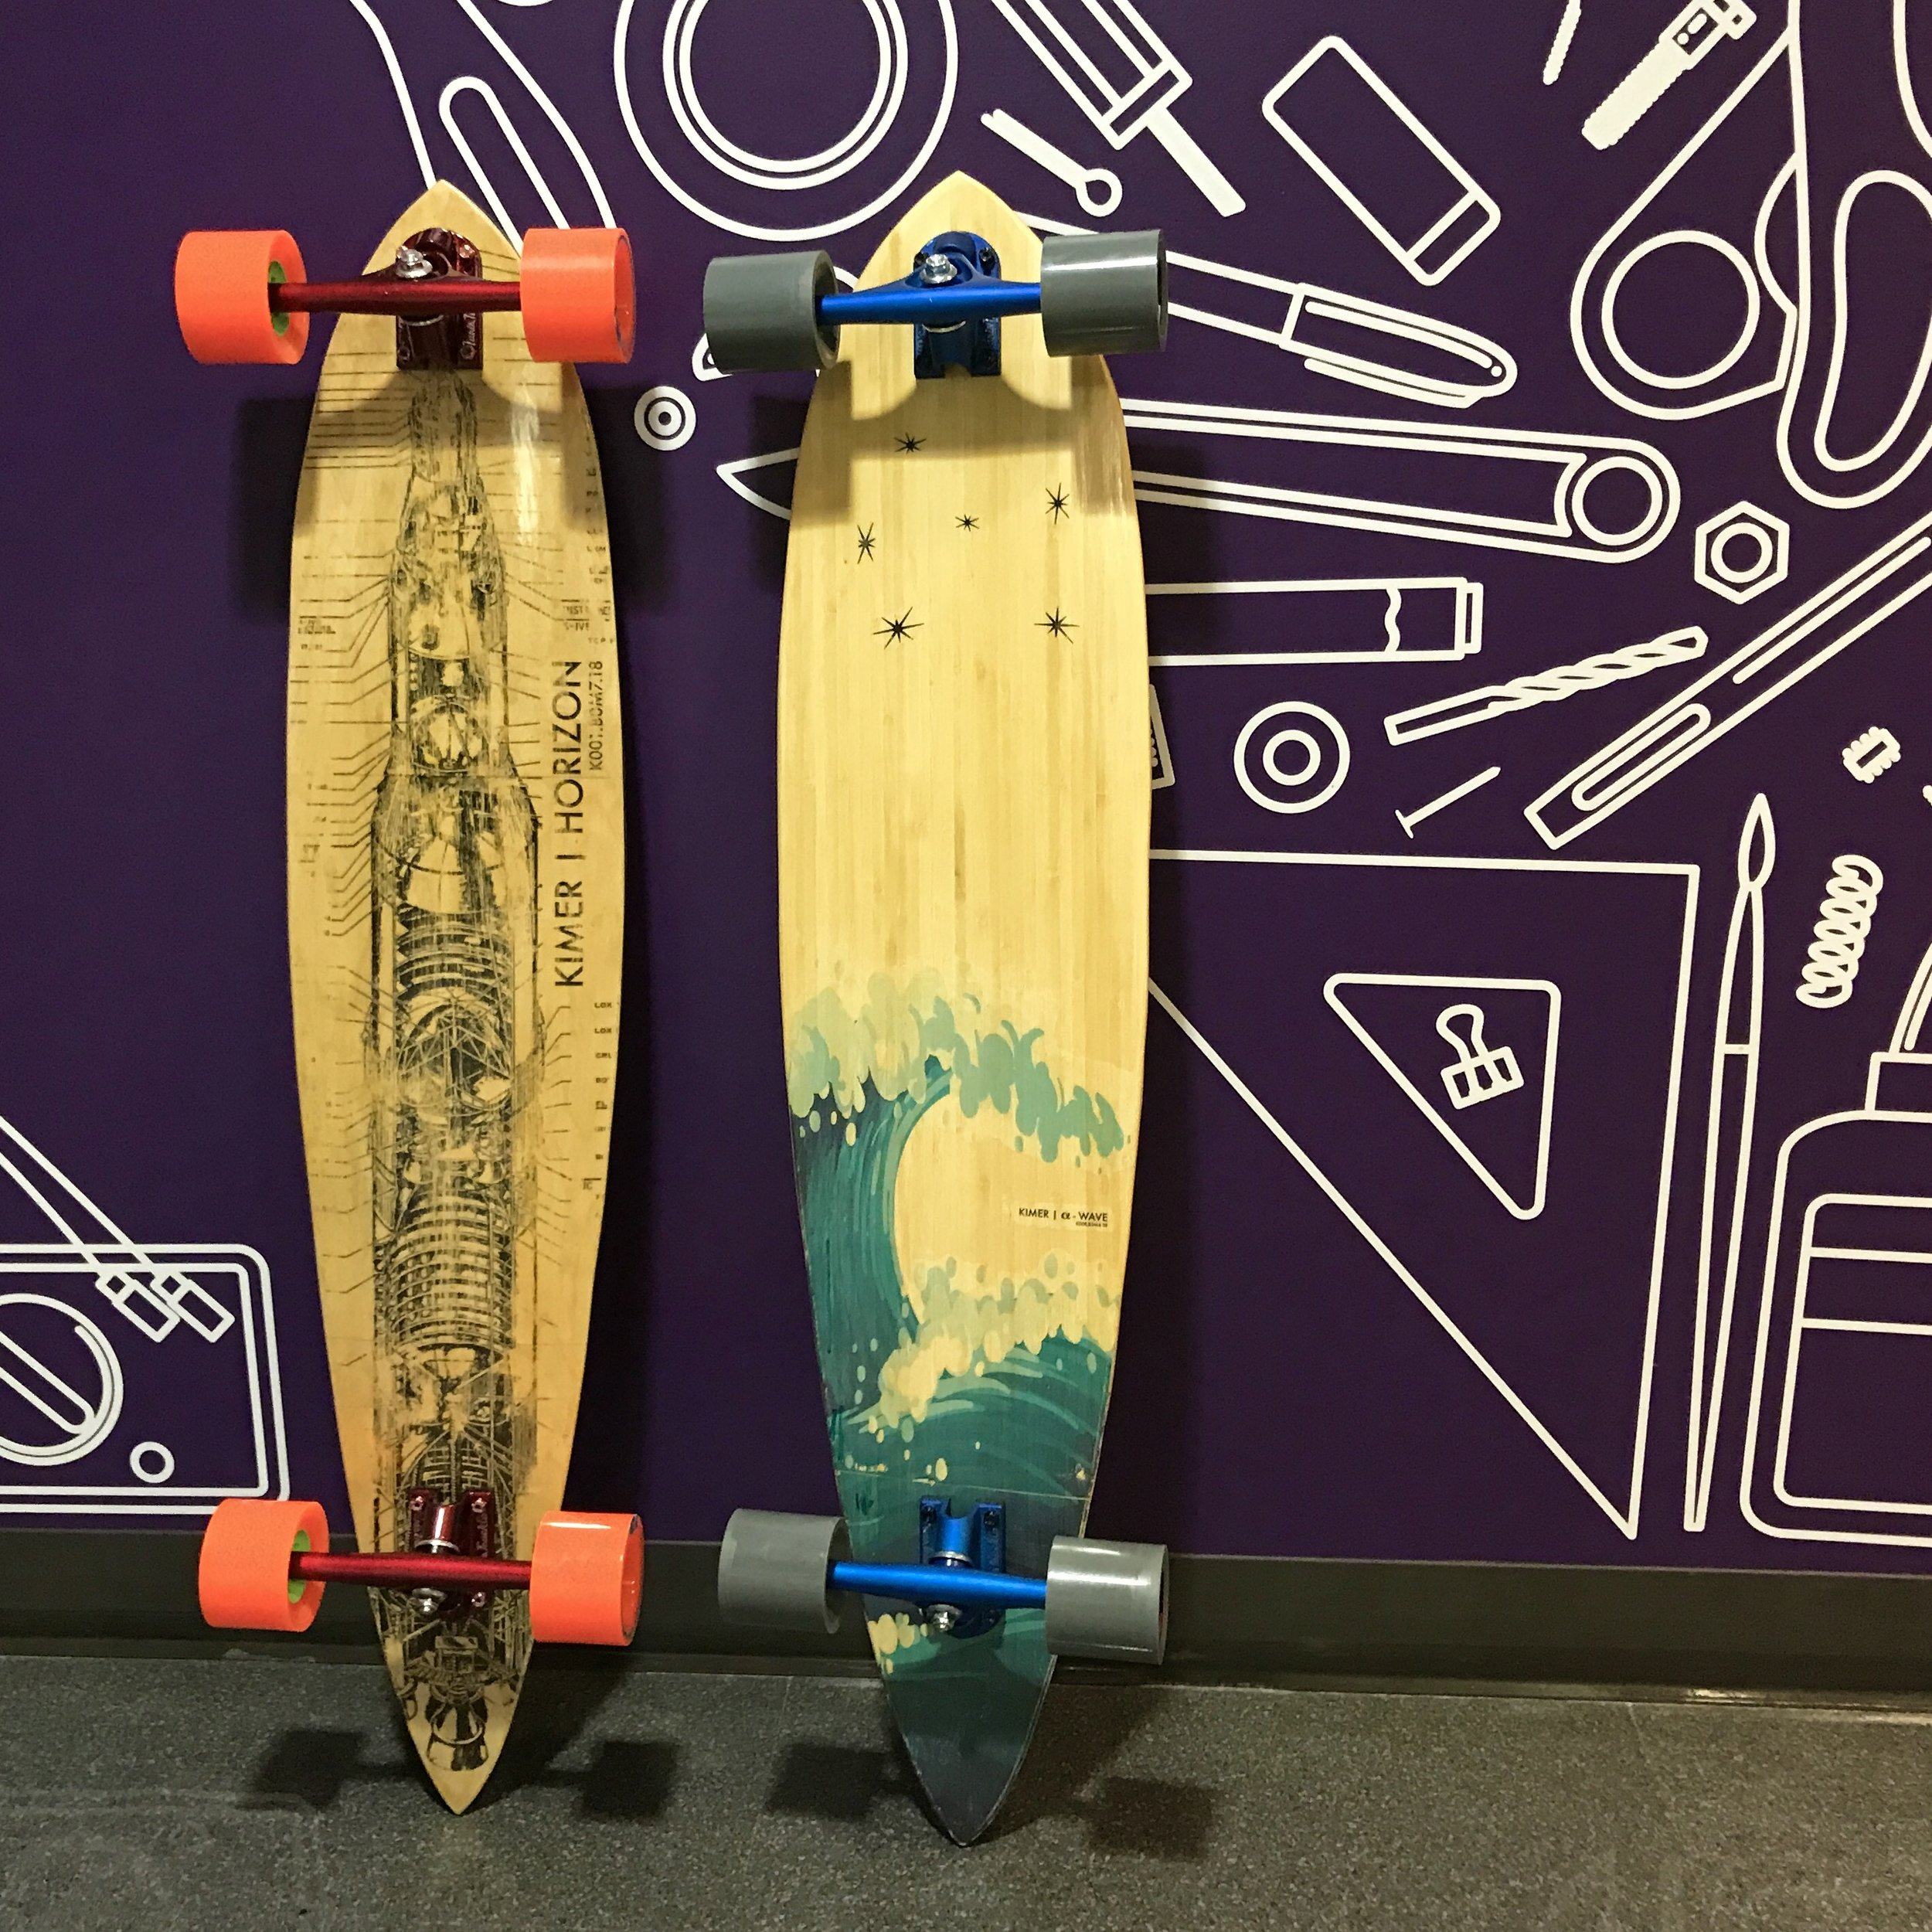 The Kimer Horizon and α-Wave, 41 inch pintail boards featuring custom graphics.